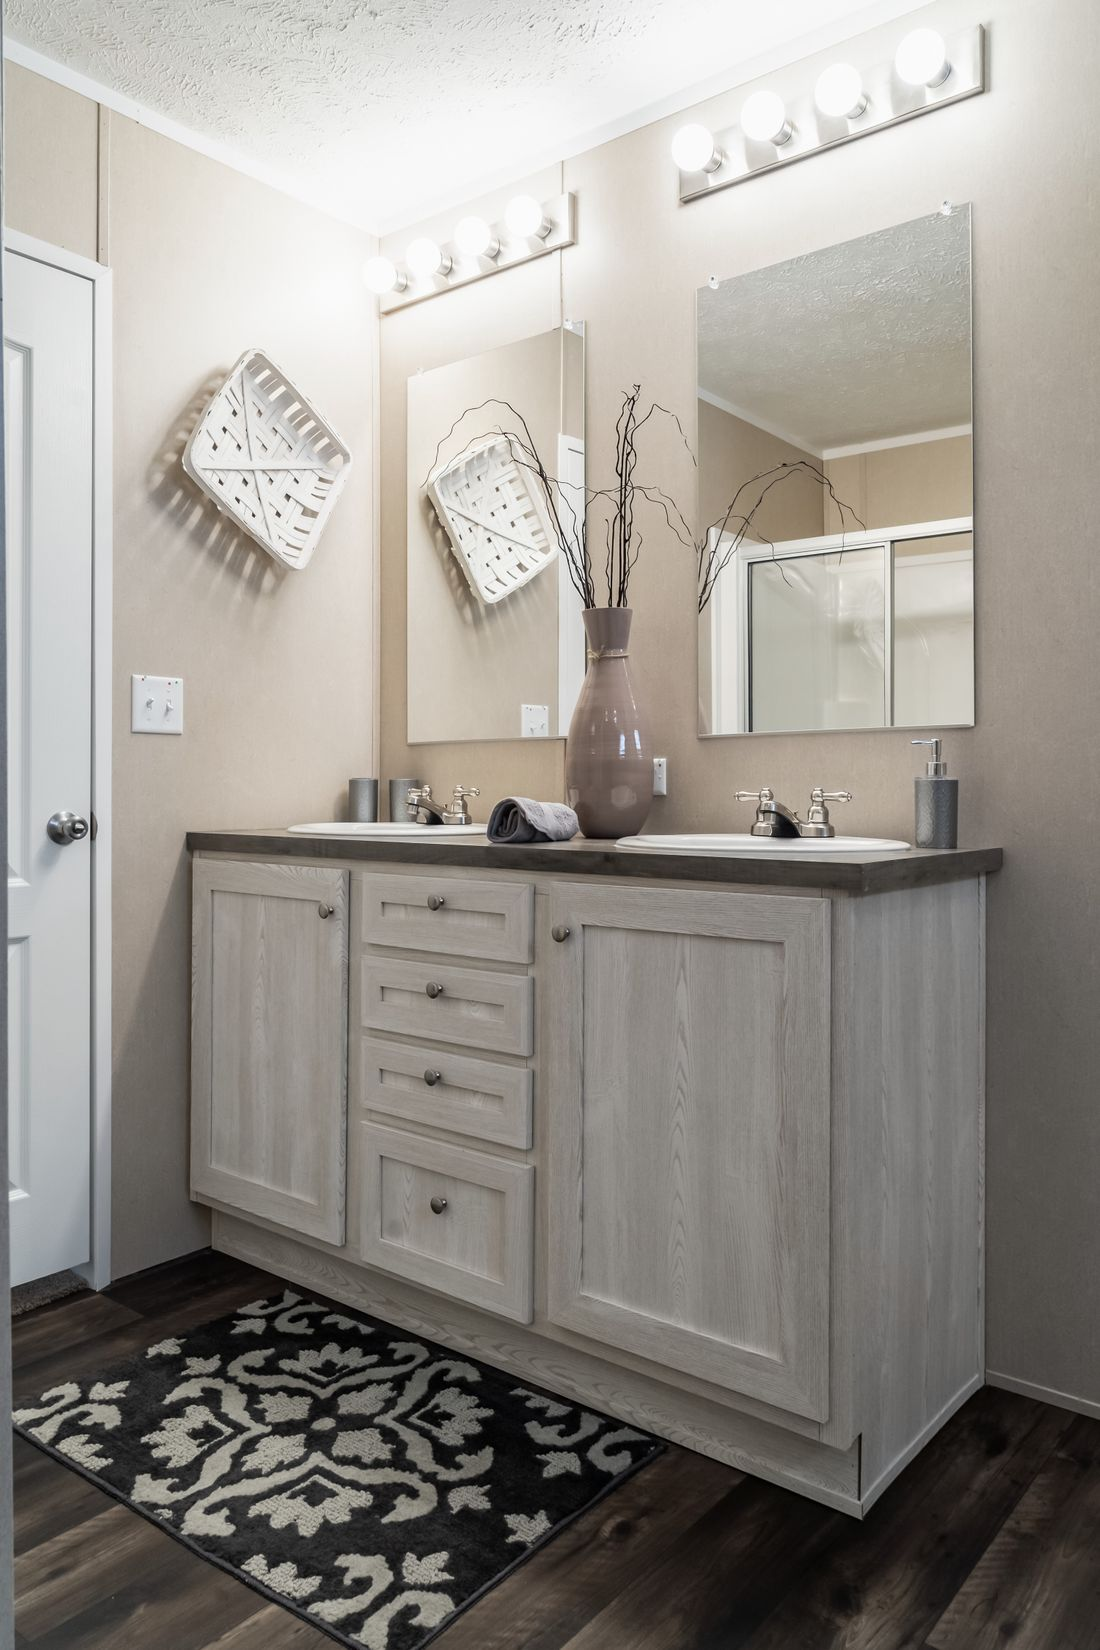 The ULTRA PRO 68 Master Bathroom. This Manufactured Mobile Home features 4 bedrooms and 2 baths.